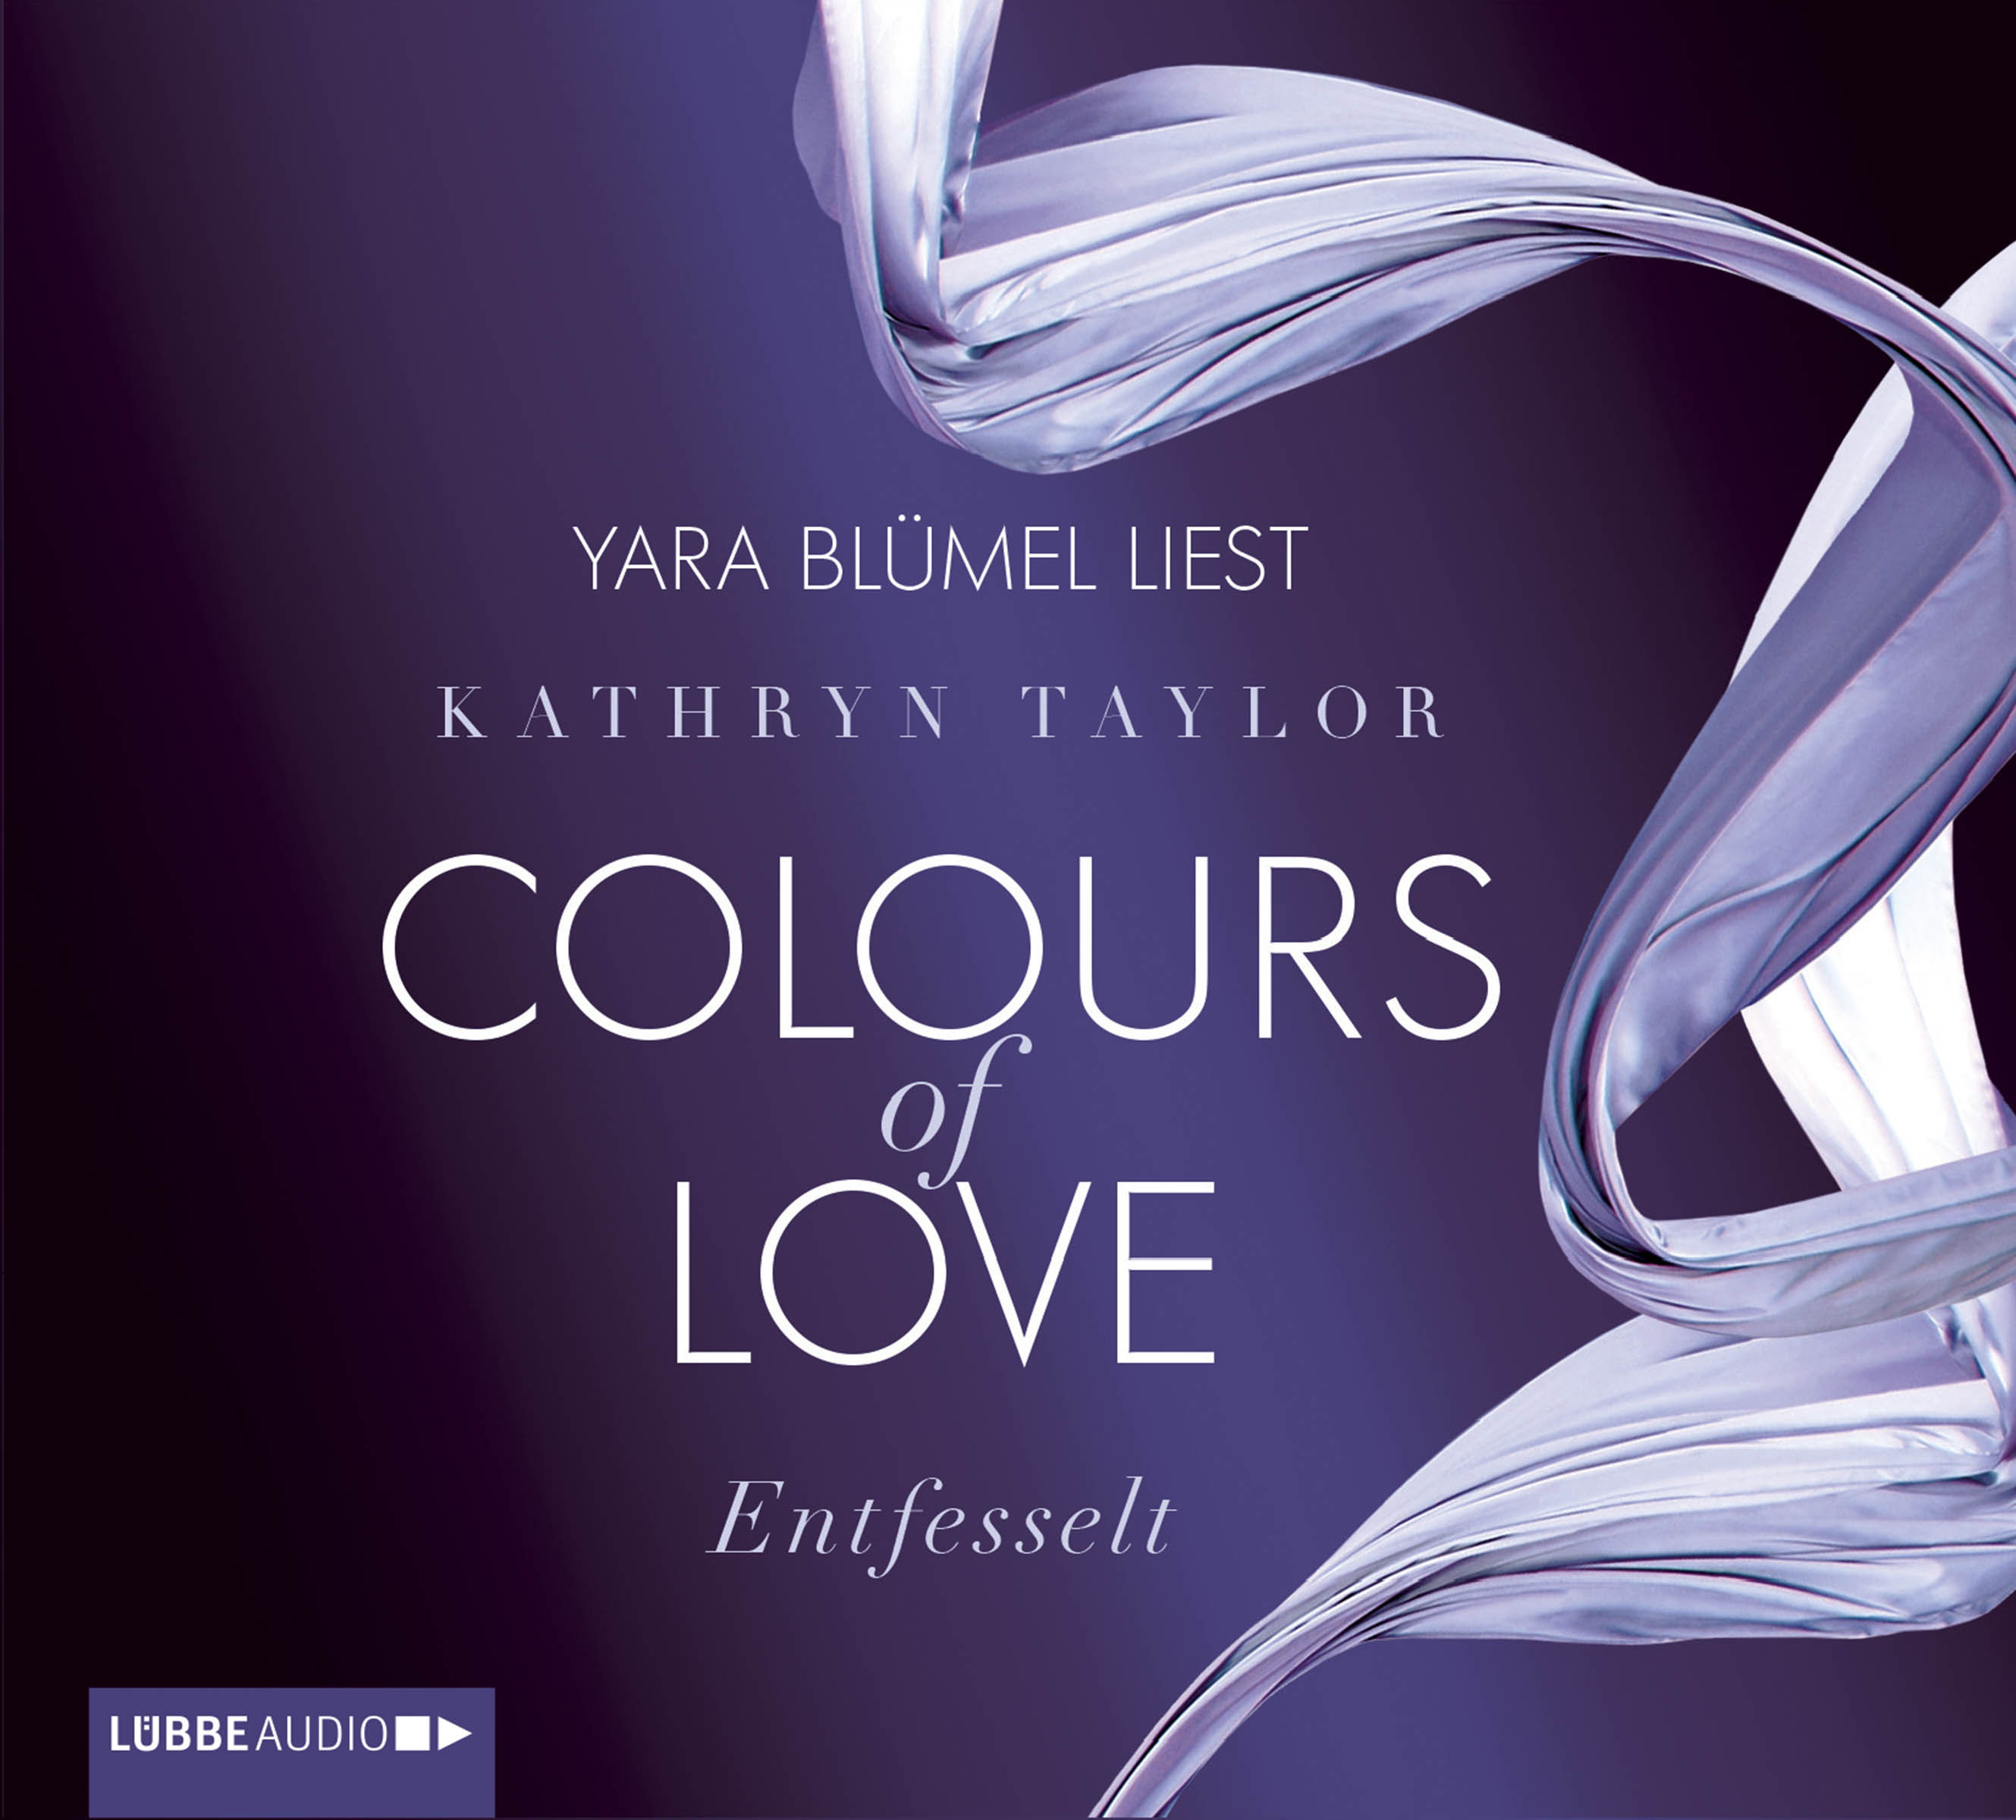 Kathryn Taylor - Colours of Love - Band 1: Entfesselt